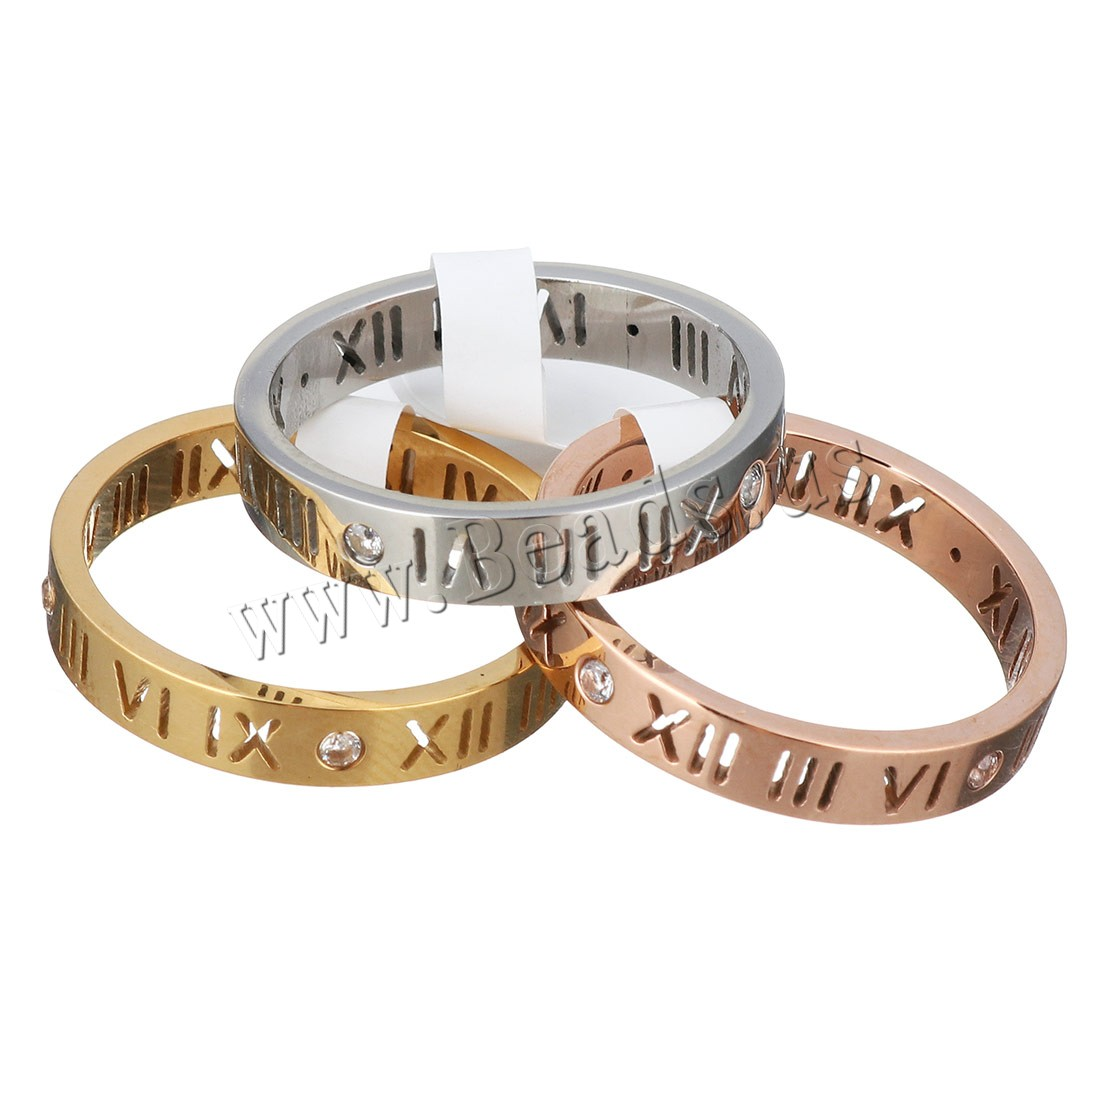 Buy Unisex Finger Ring Stainless Steel plated roman number & rhinestone colors choice 3.50mm US Ring Size:6 Sold PC